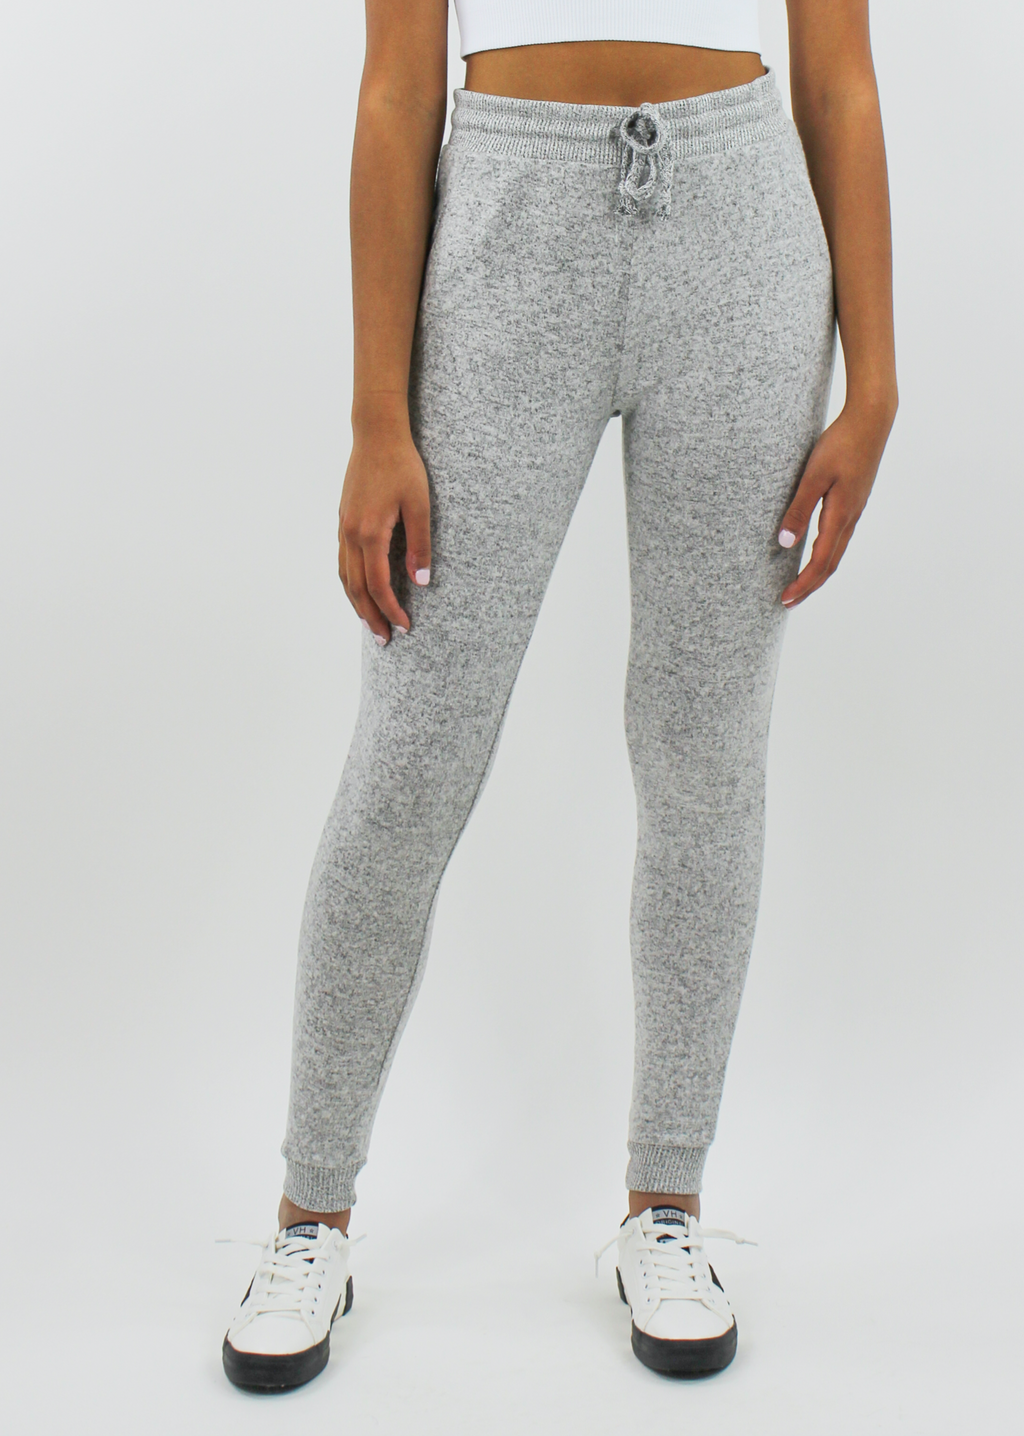 Just The Way You Are Joggers ★ Grey - Rock N Rags